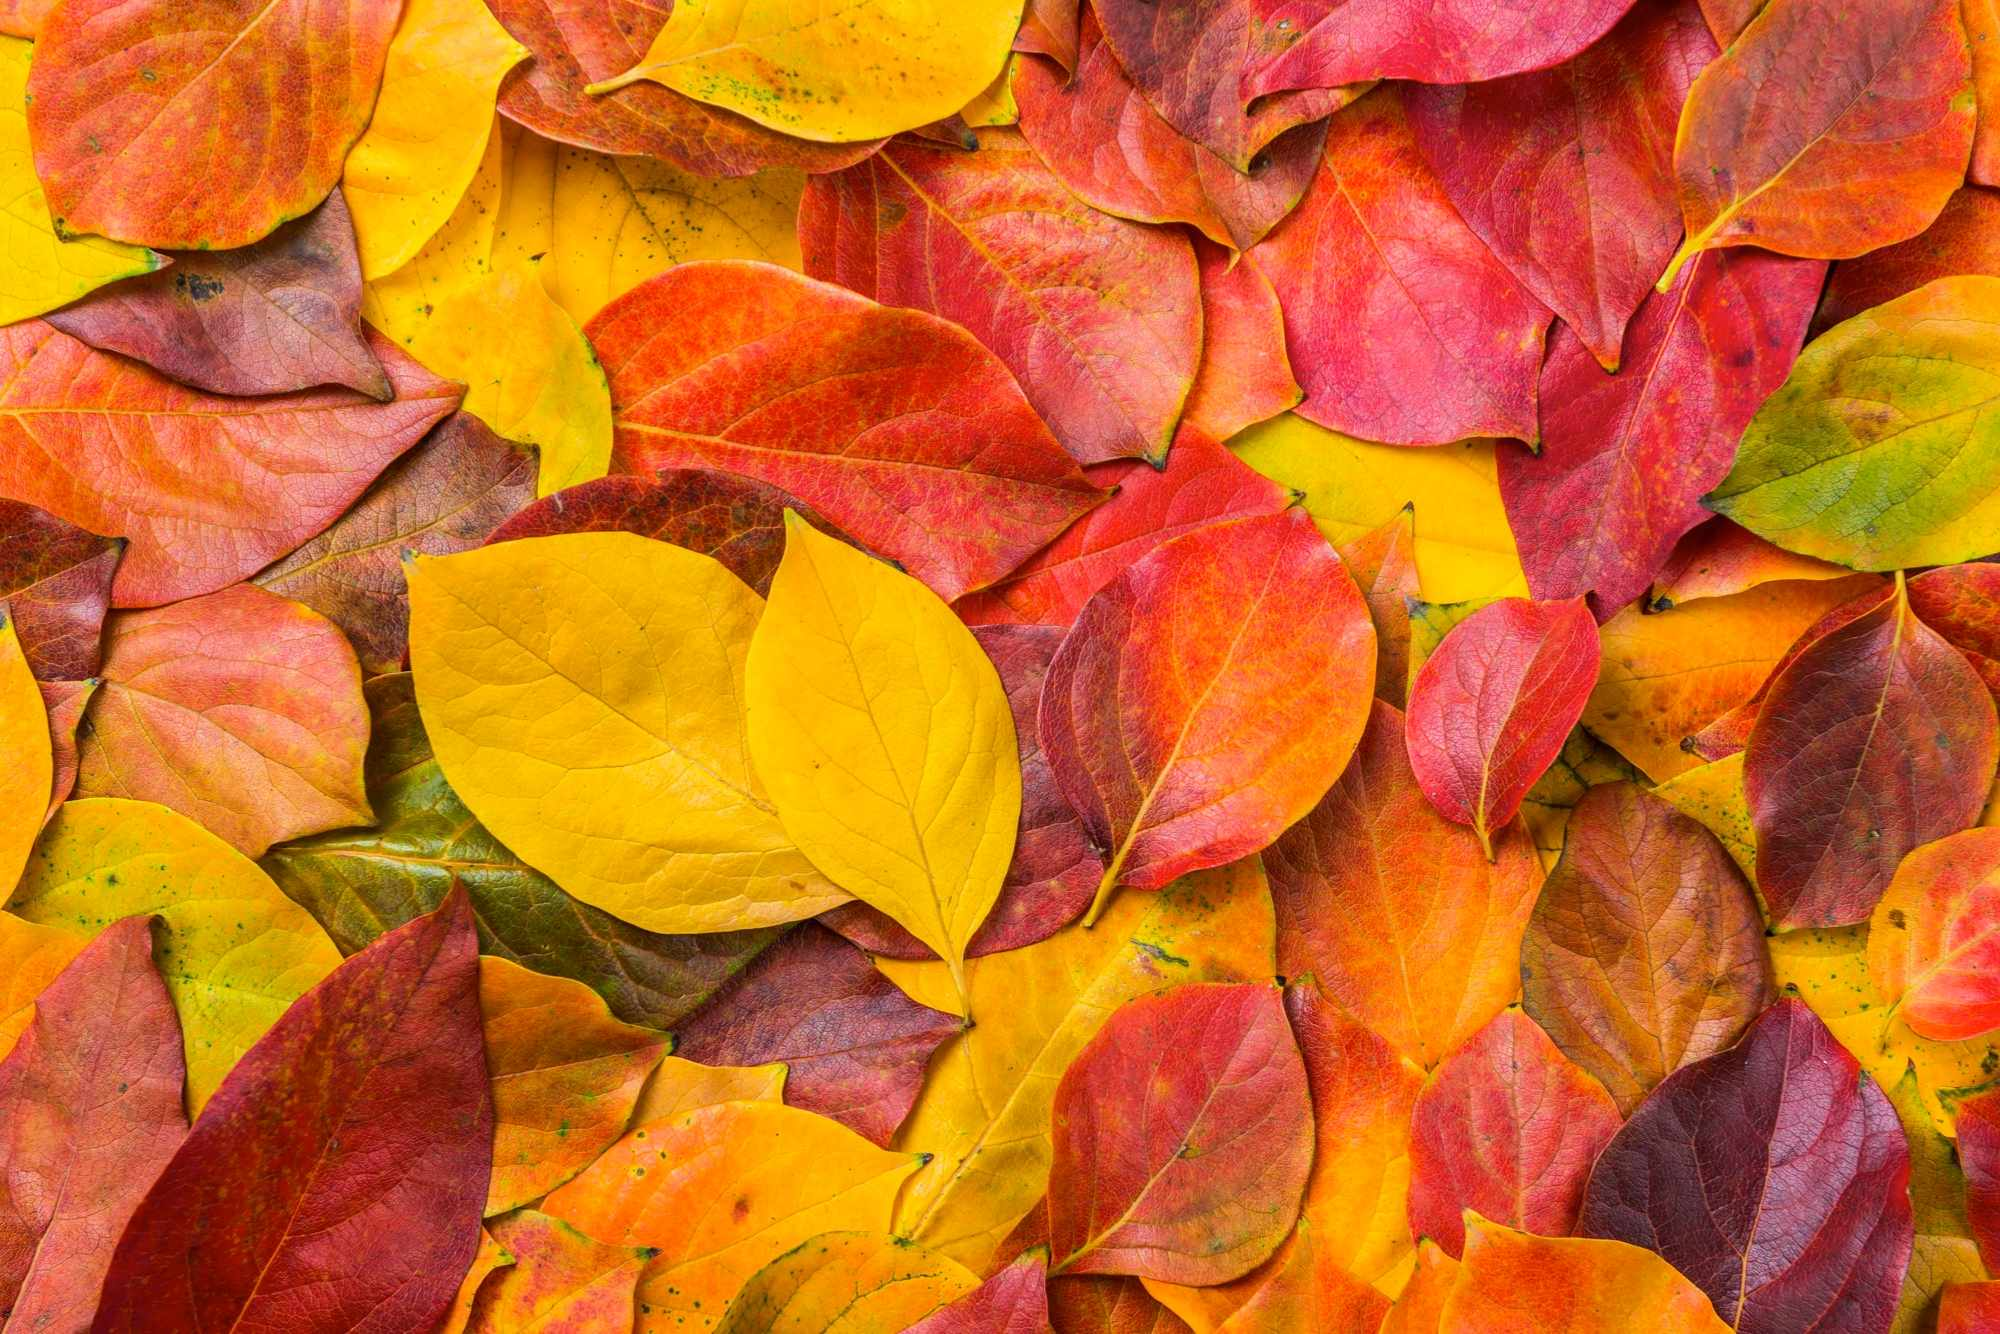 Autumn leaves © Kenan Olgun / Getty